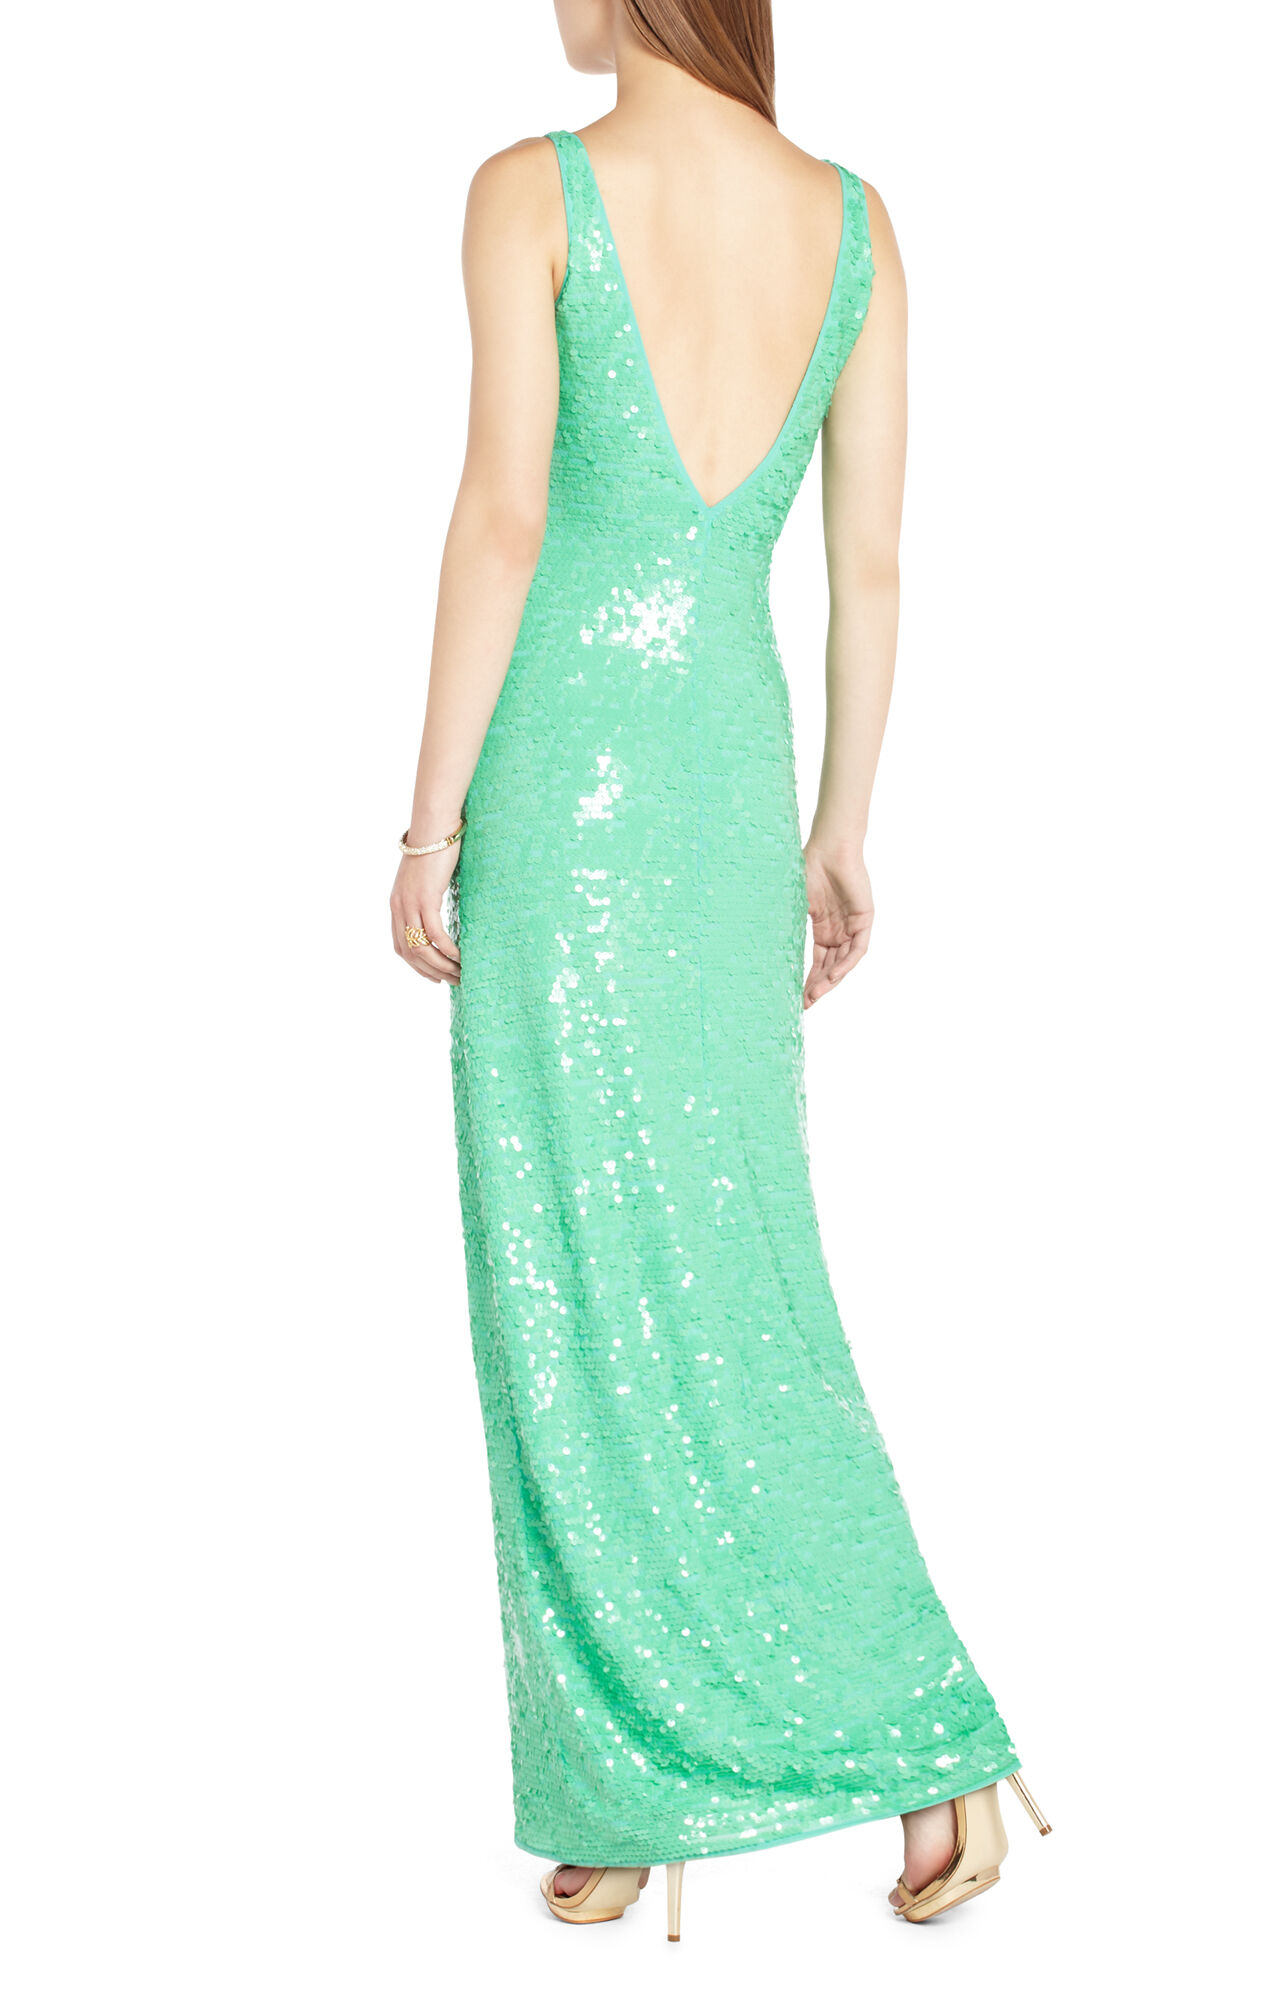 Sumner Sequined Evening Dress